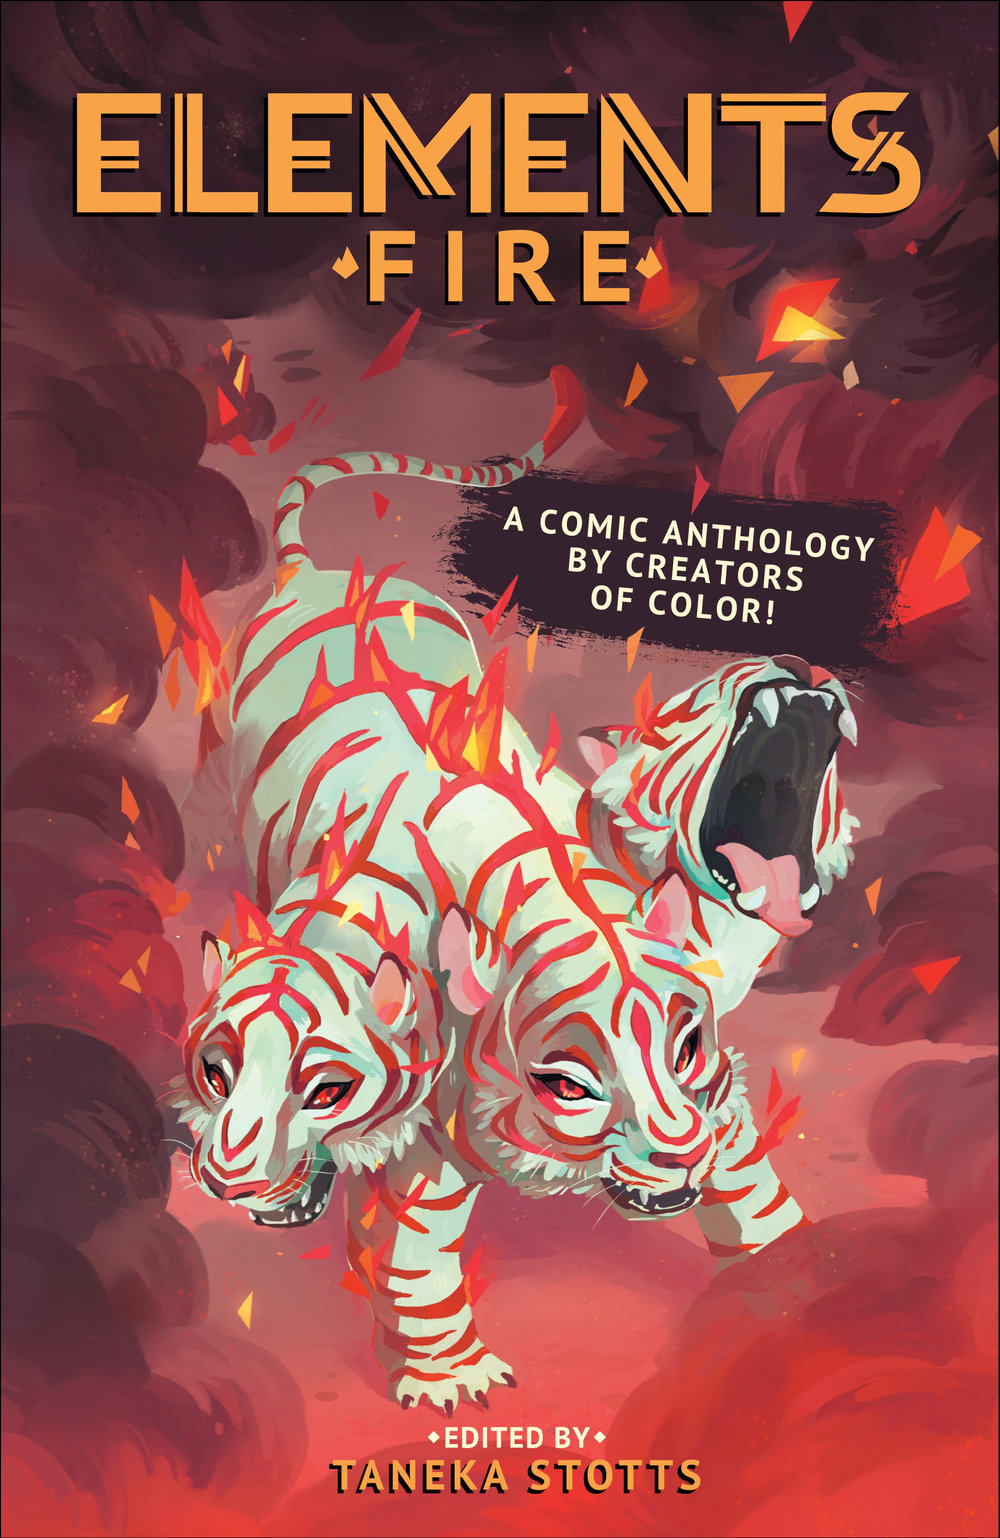 - ELEMENTS: FIRE - publisher / editor(Beyond Press, 2016)2018 Eisner Award winner2018 Independent Publisher Awards silver medal2018 DINKy Award nominee2017 Ignatz Award winnerAn all-ages anthology focused on creators of color sharing comics with a fire theme, ranging from sci-fi & fantasy to alternative cyberpunk, humor, and suspense.